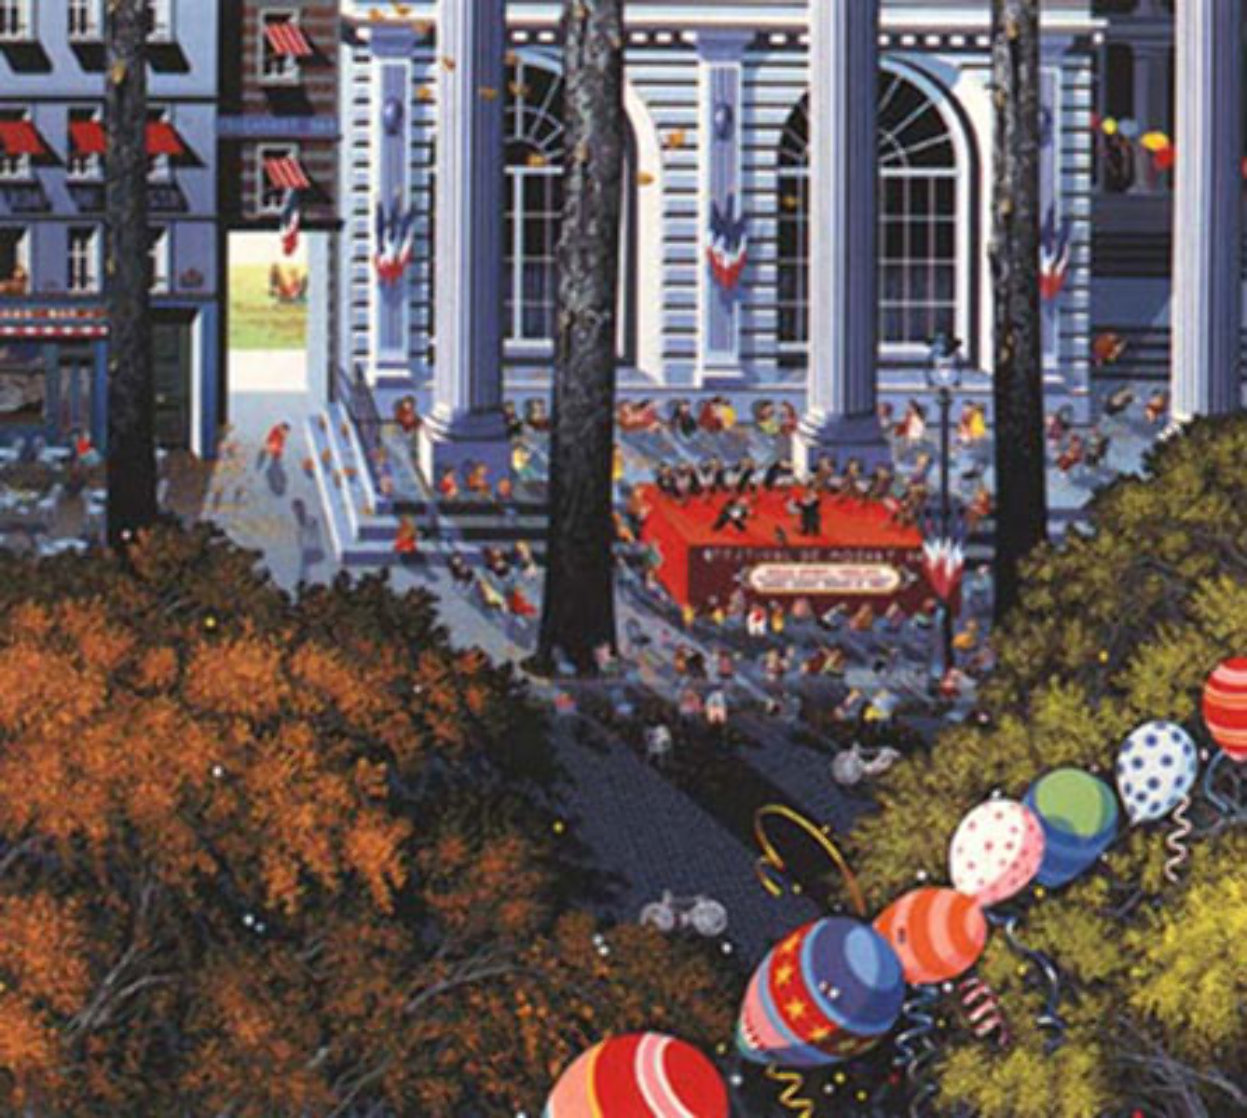 Concert in the City 1985 Limited Edition Print by Hiro Yamagata